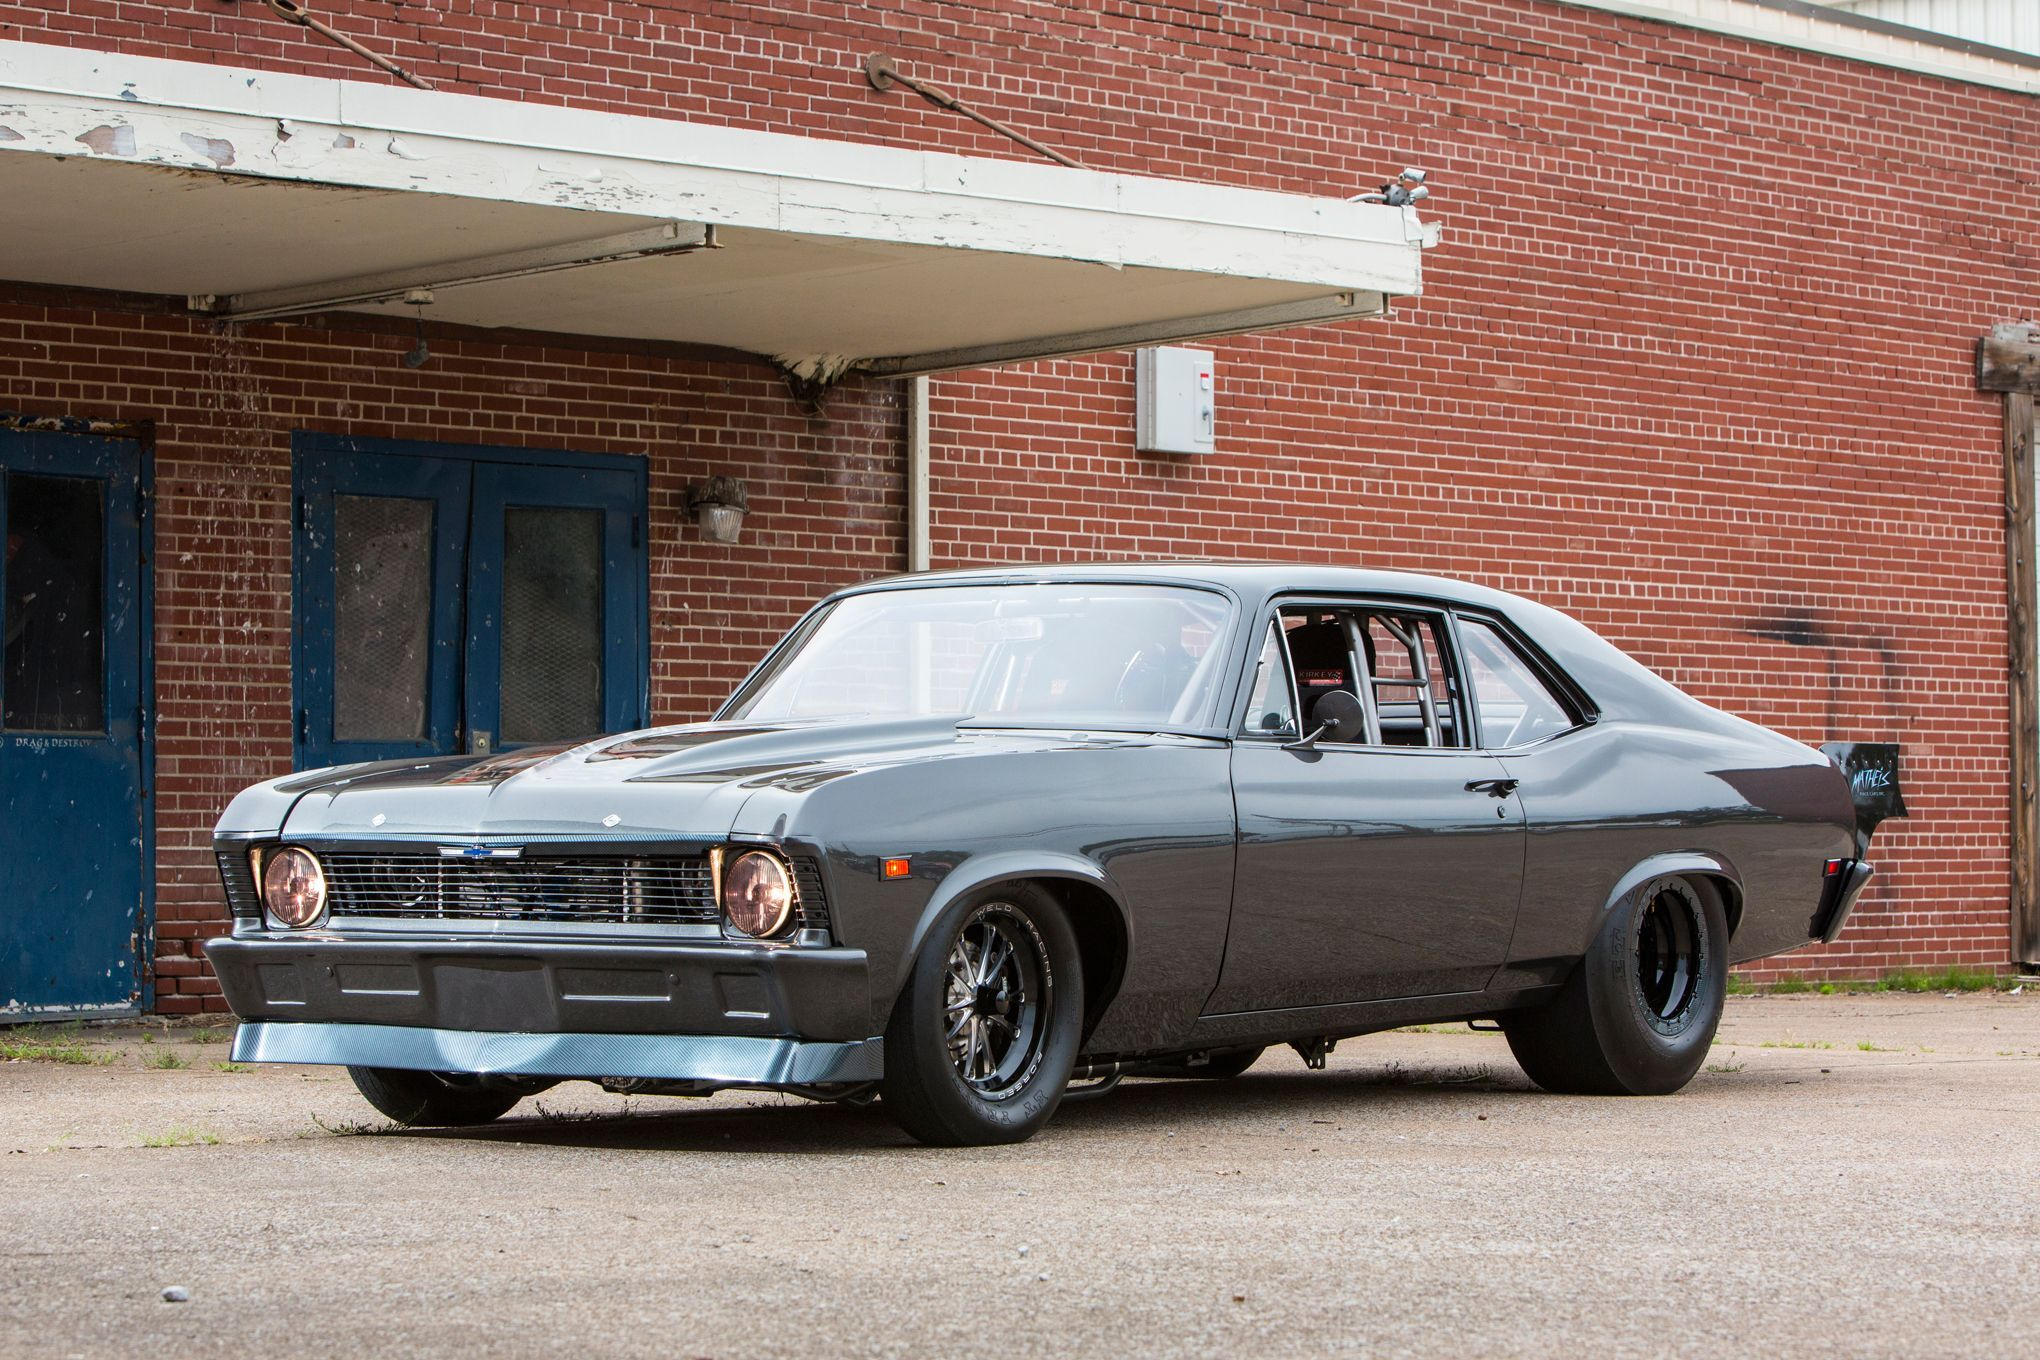 Dan Novaras 2 000HP 1969 Chevrolet Nova Drag Racing V